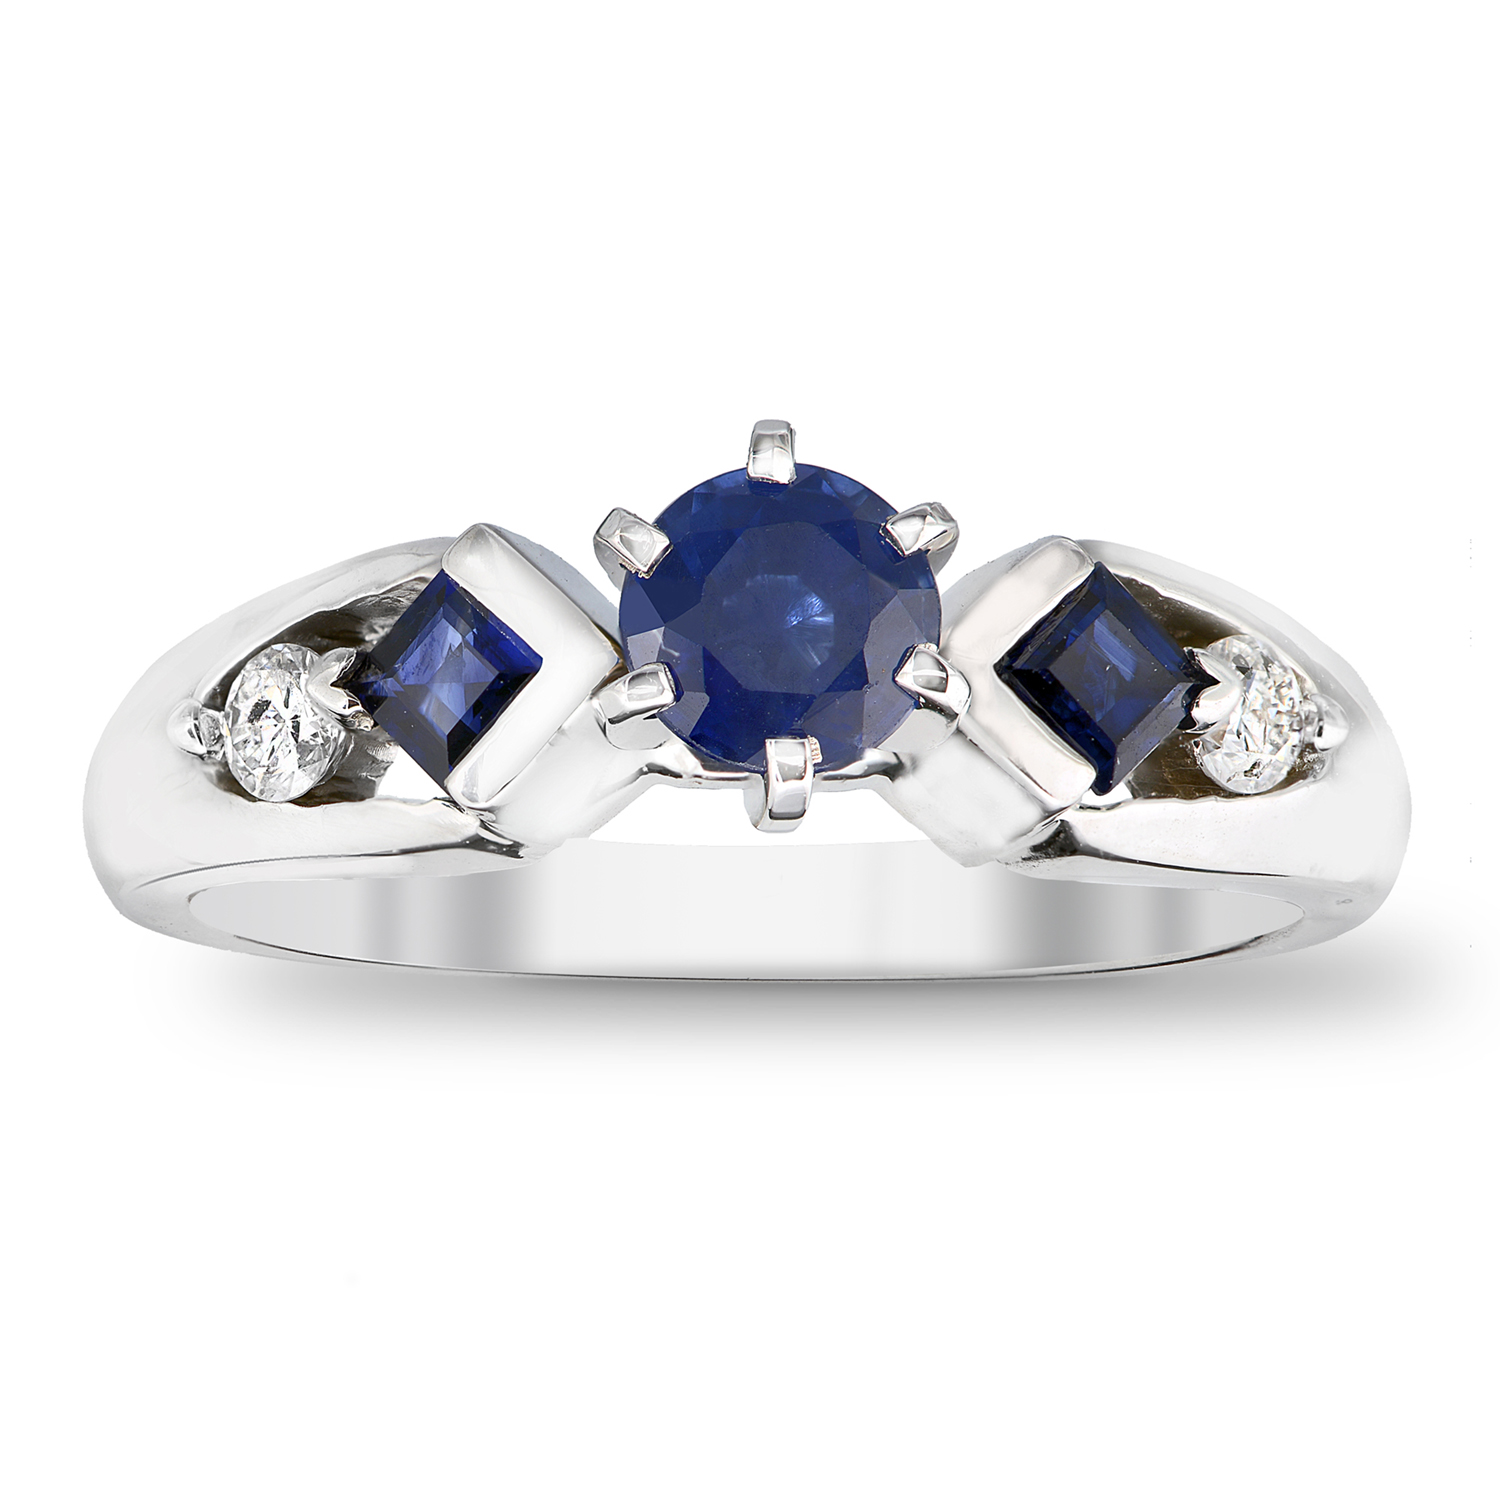 View 1.00cttw Sapphire and Diamond Engagement  Ring in 14k Gold